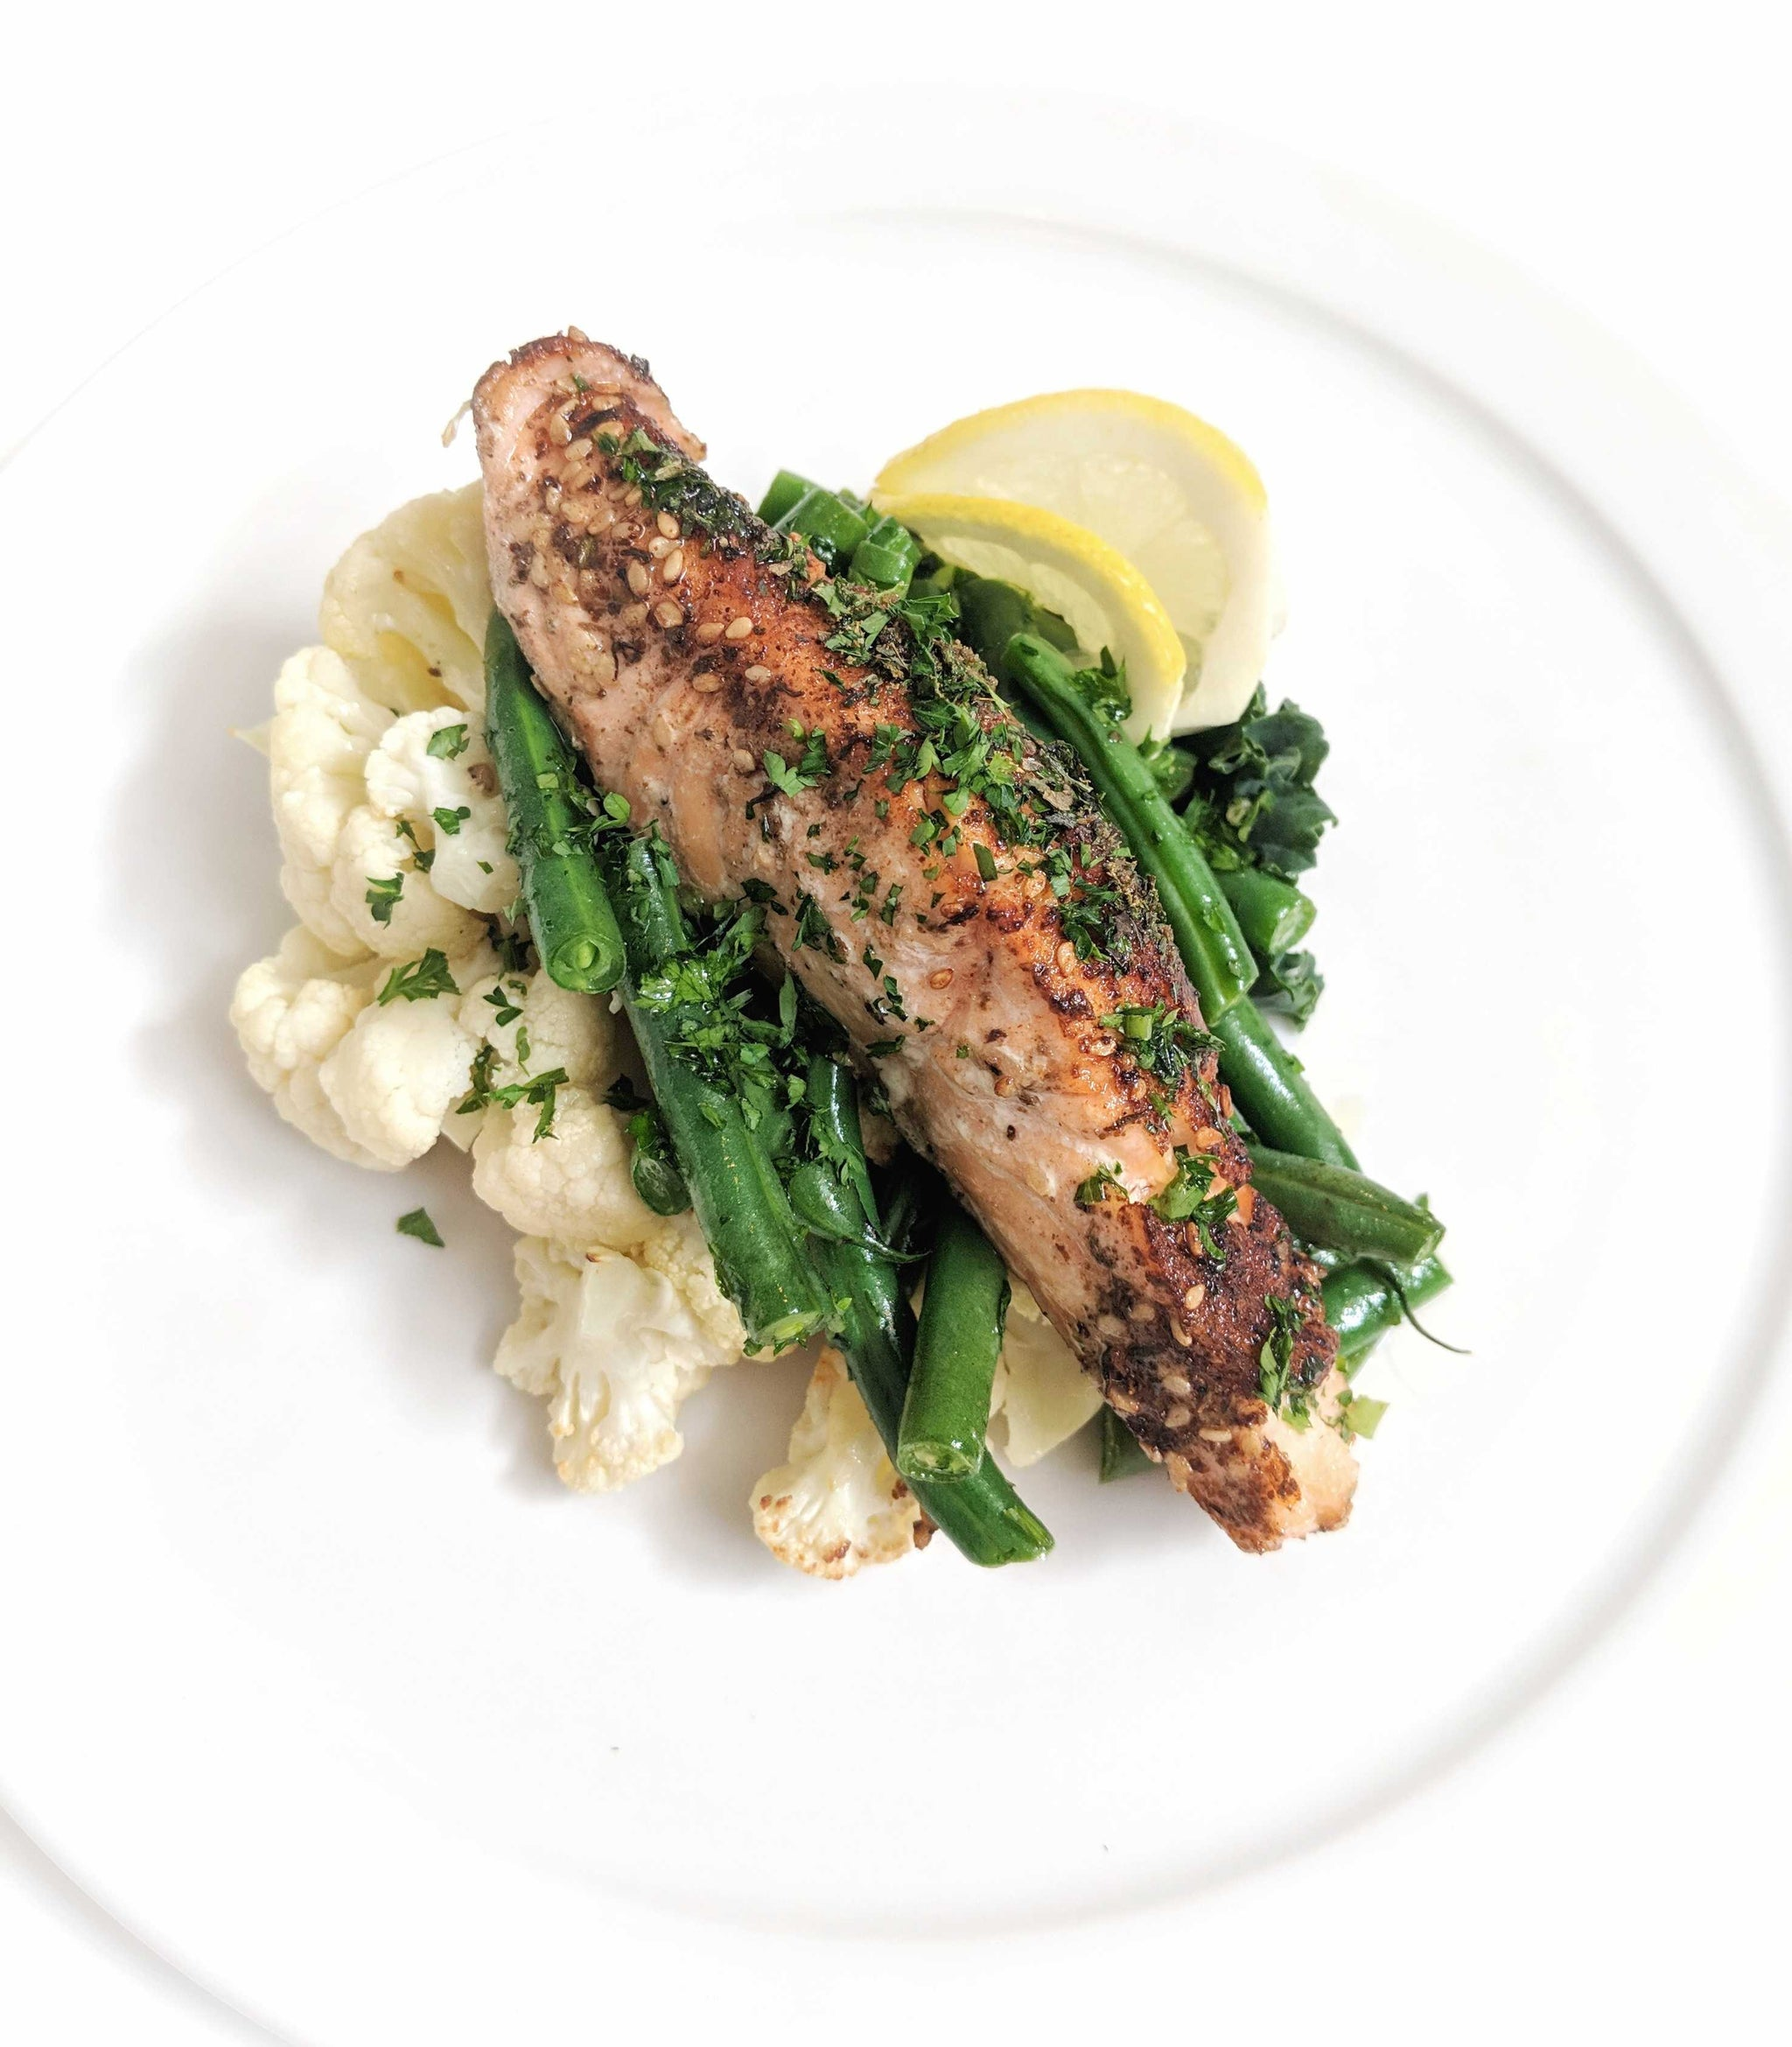 Salmon, Green Beans and Cauliflower (C) - Sauté